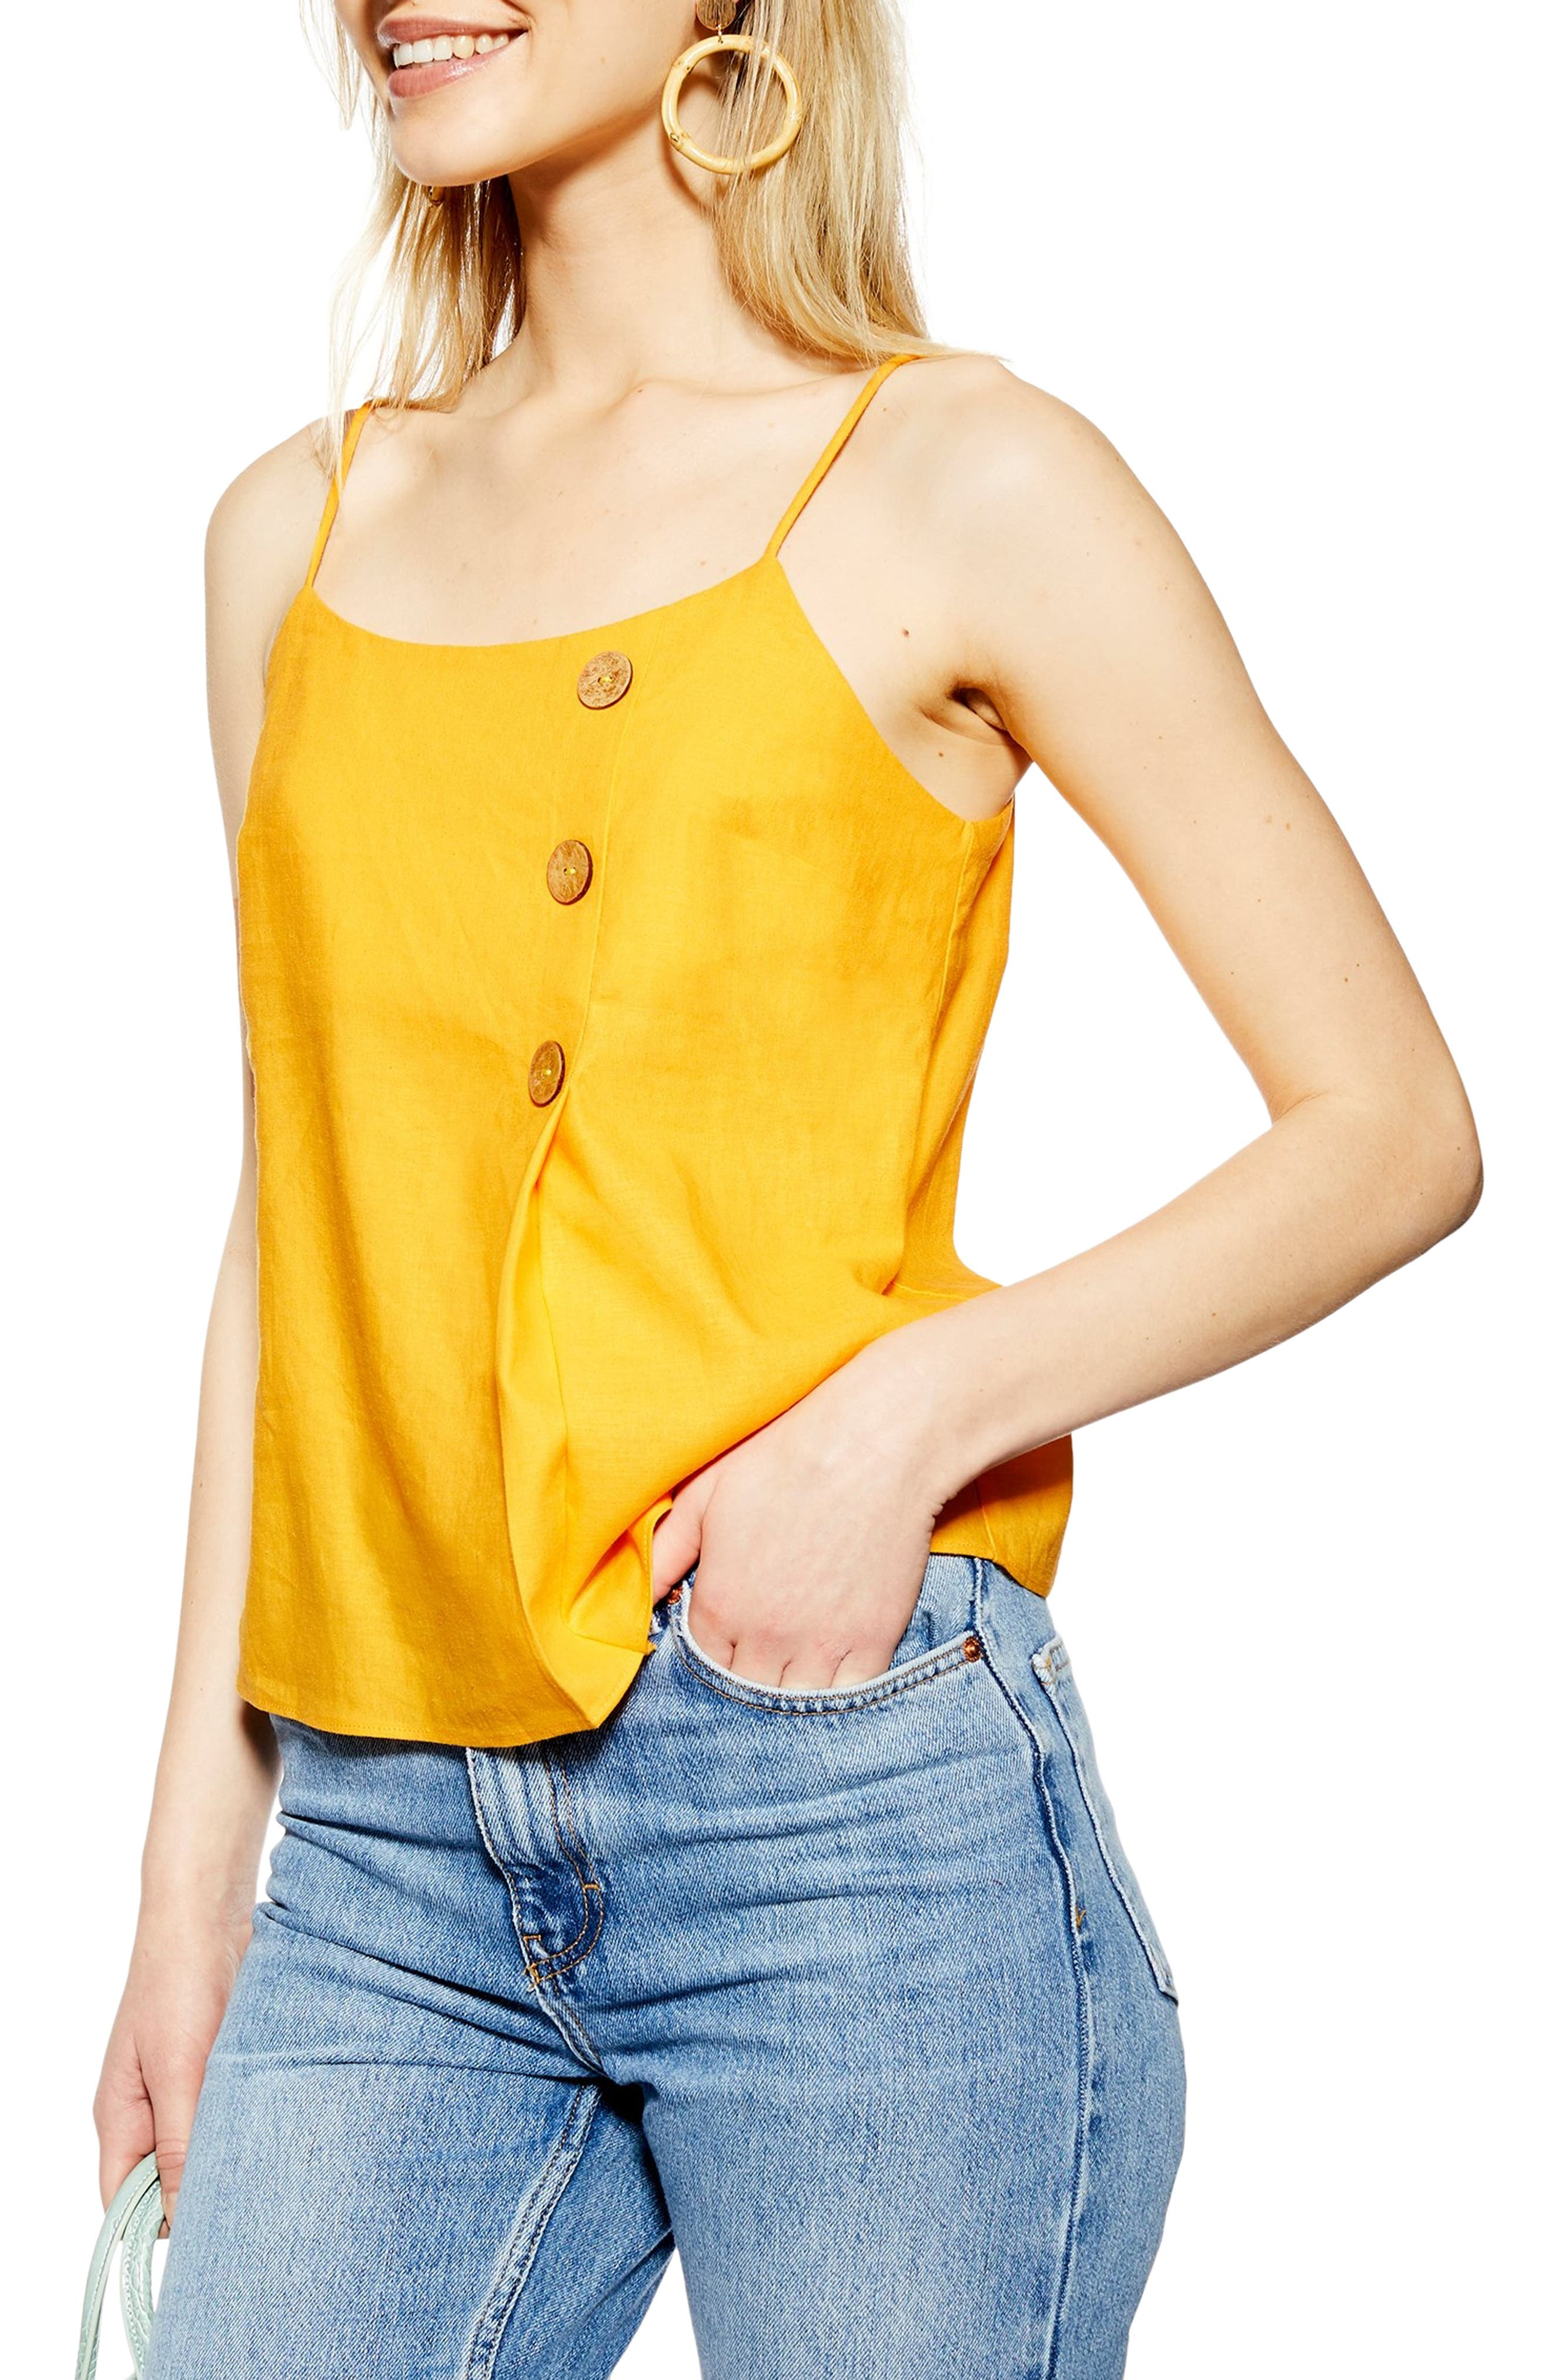 Topshop Button Wrap Camisole Top, US (fits like 6-8) - Yellow